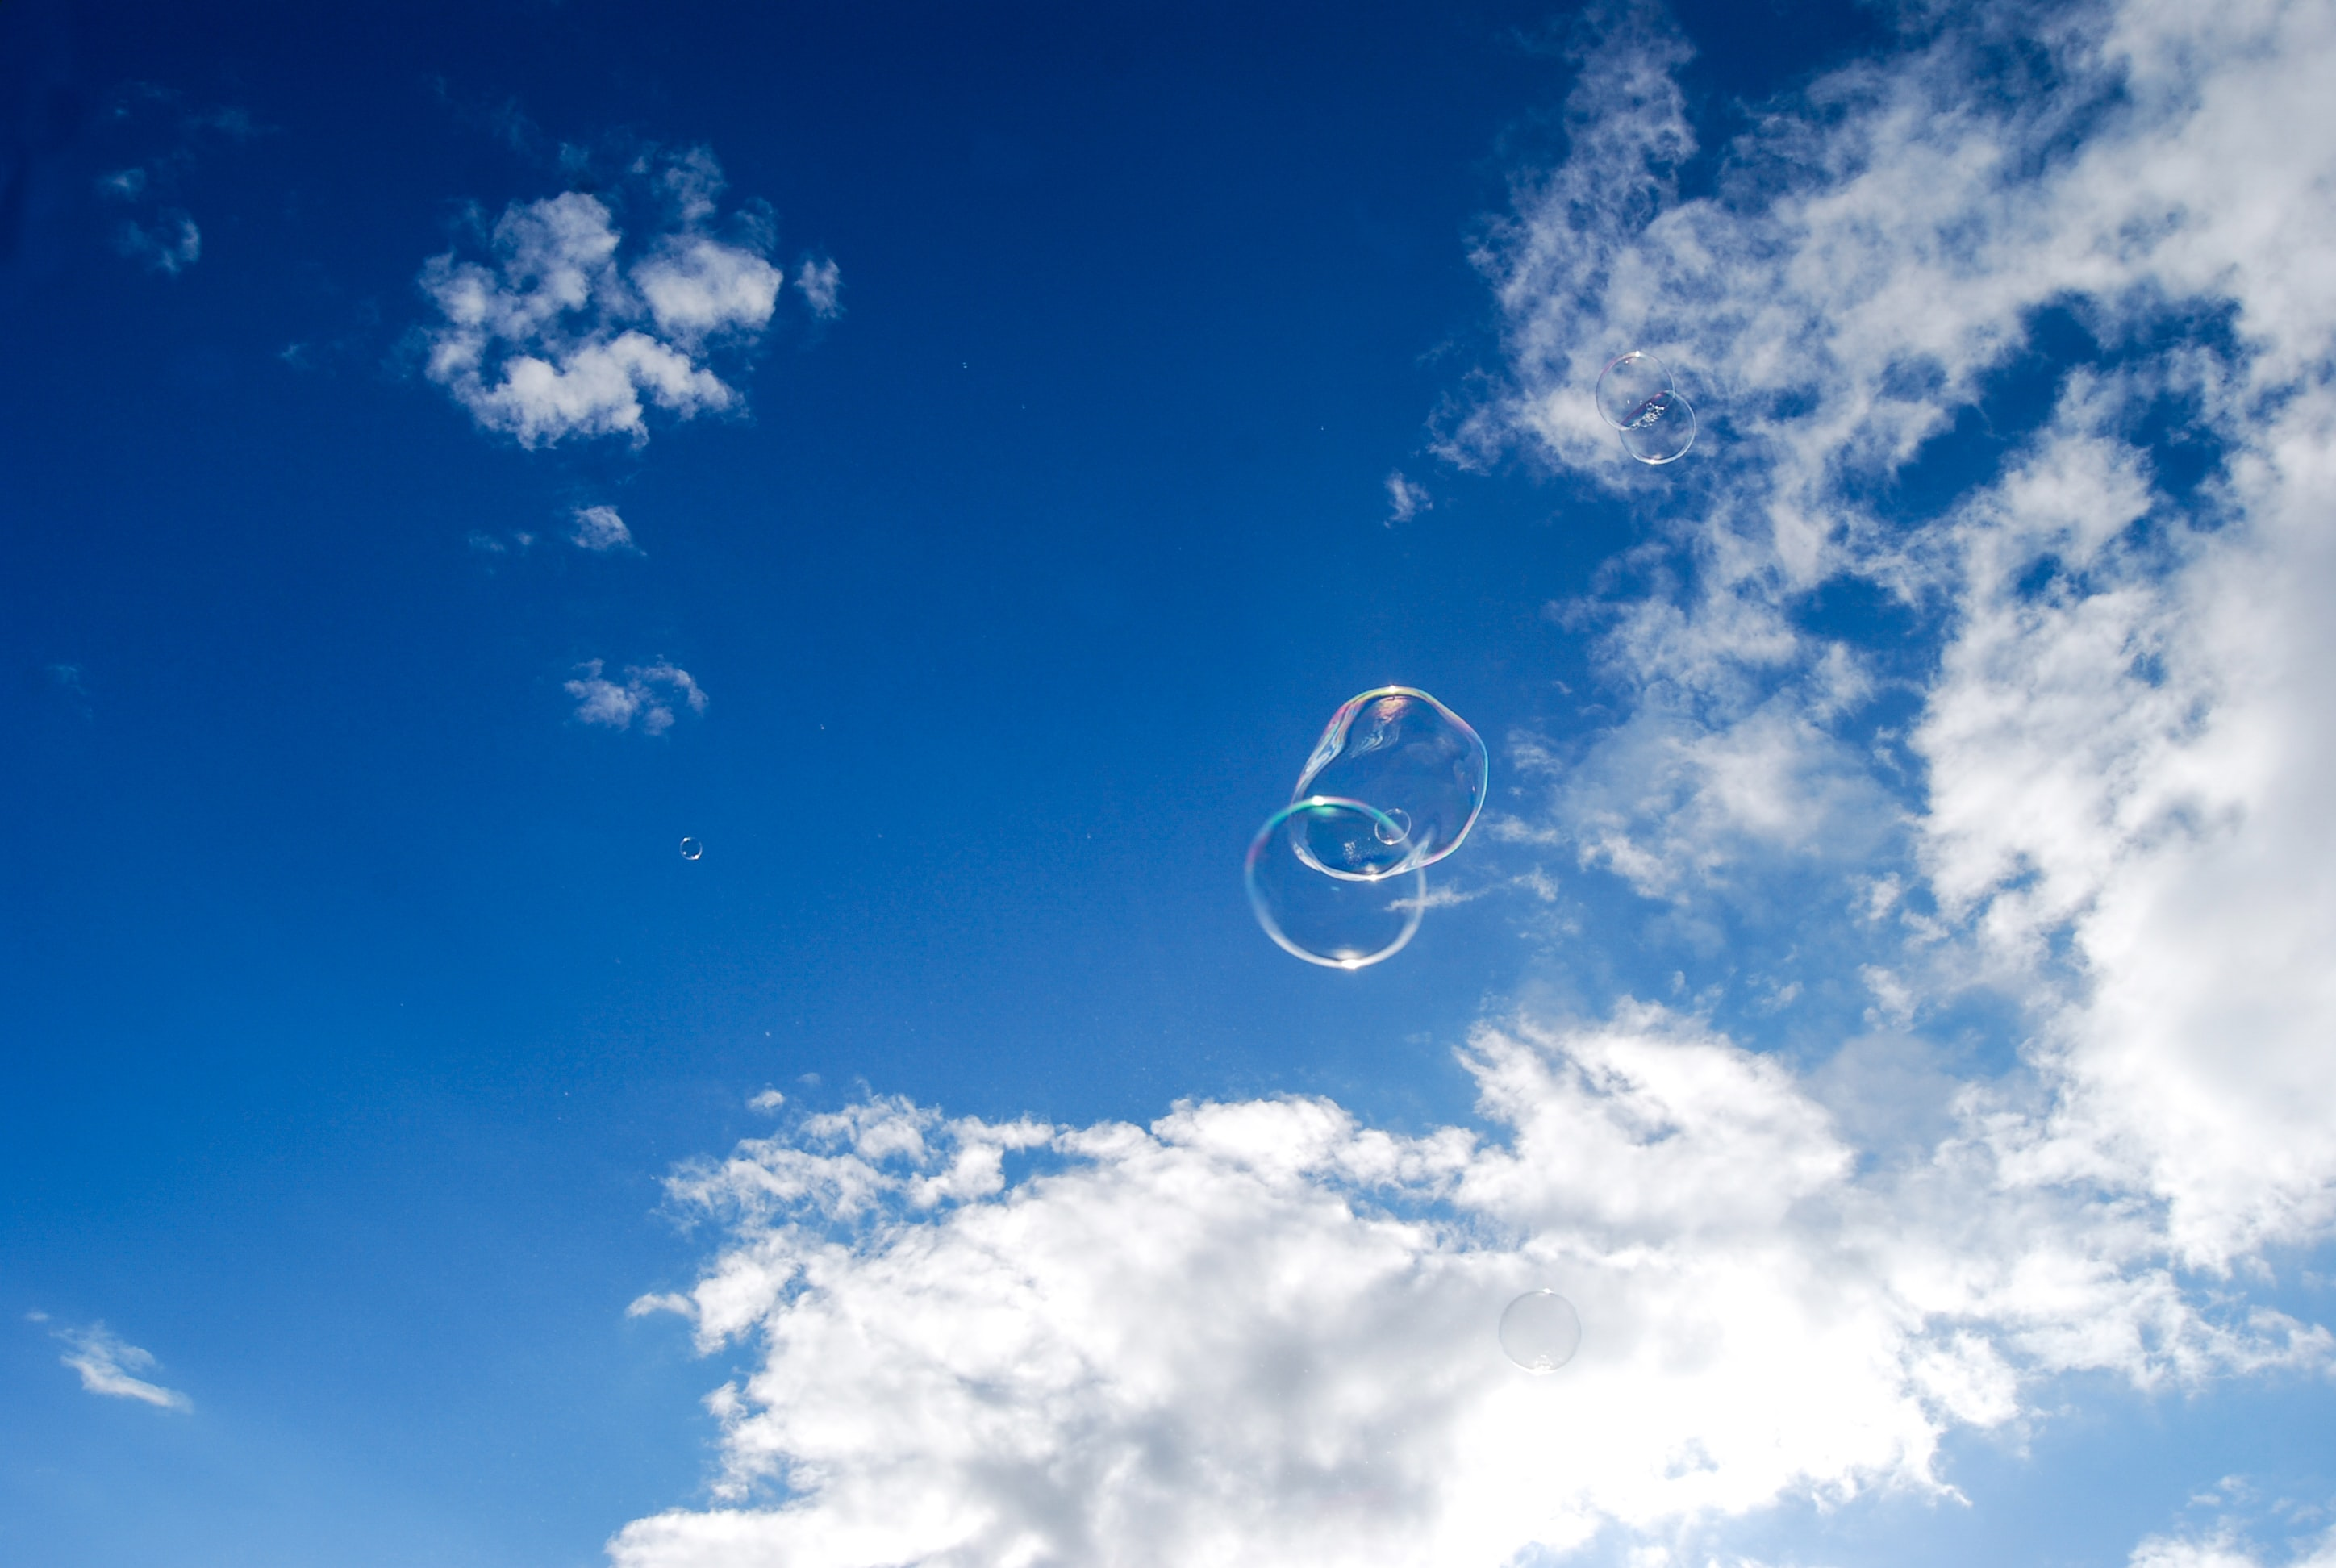 two bubbles under blue sky and white clouds during daytime